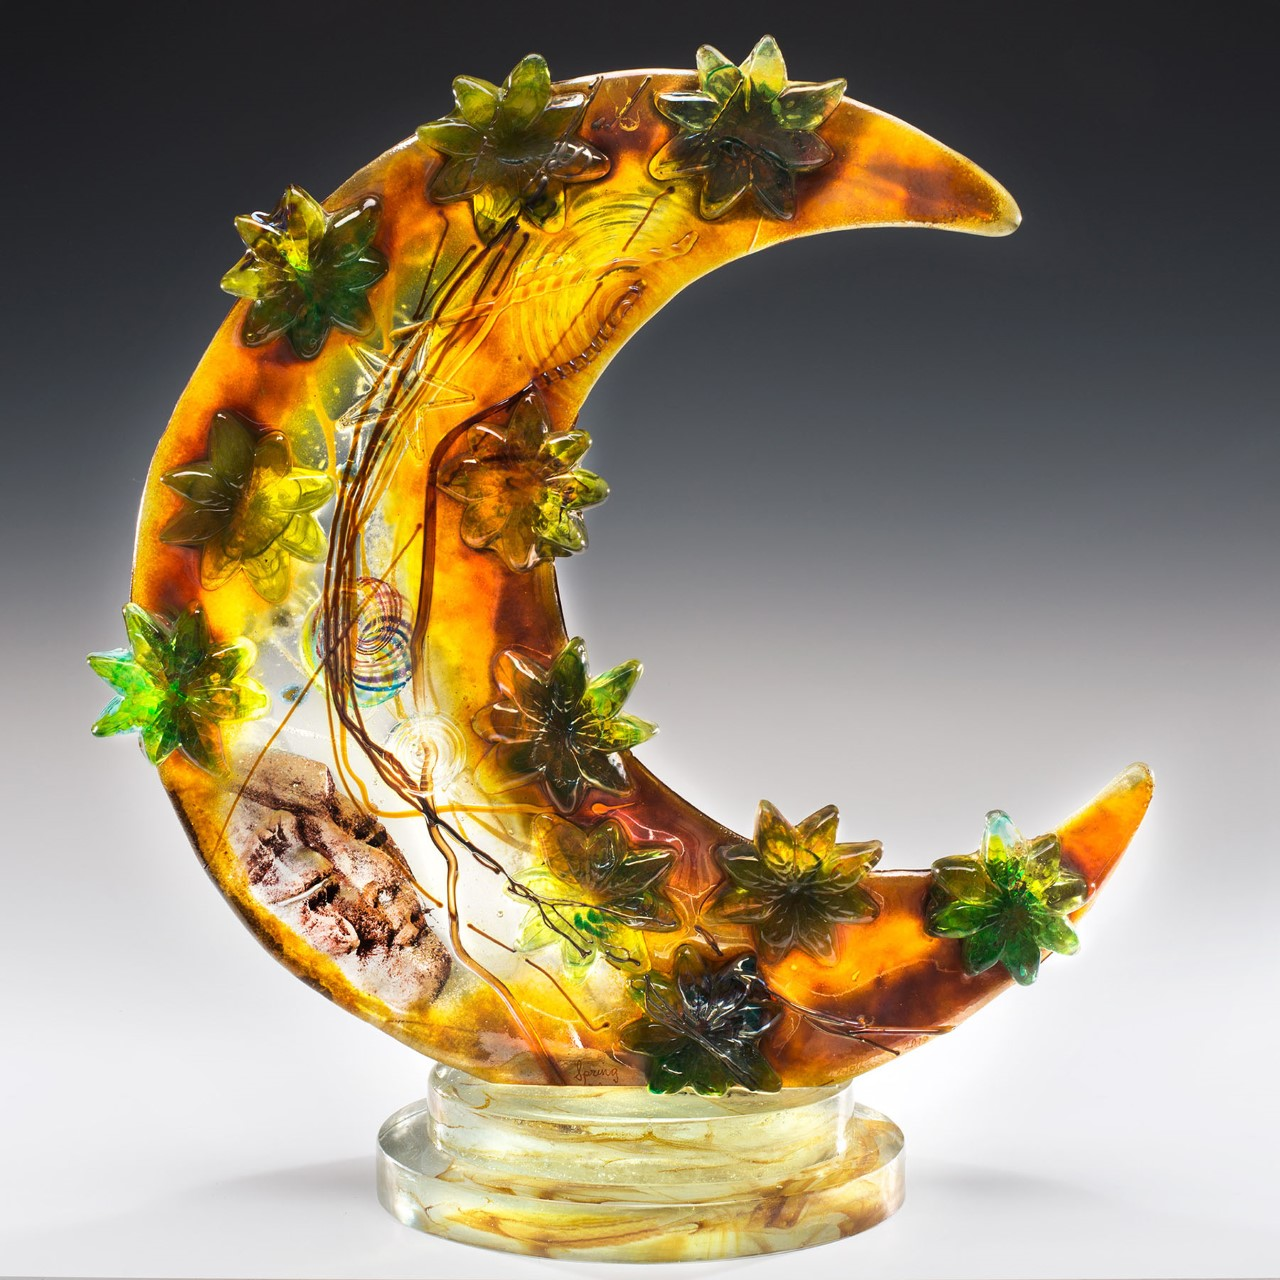 Members' Show: Contemporary Craft at its Finest